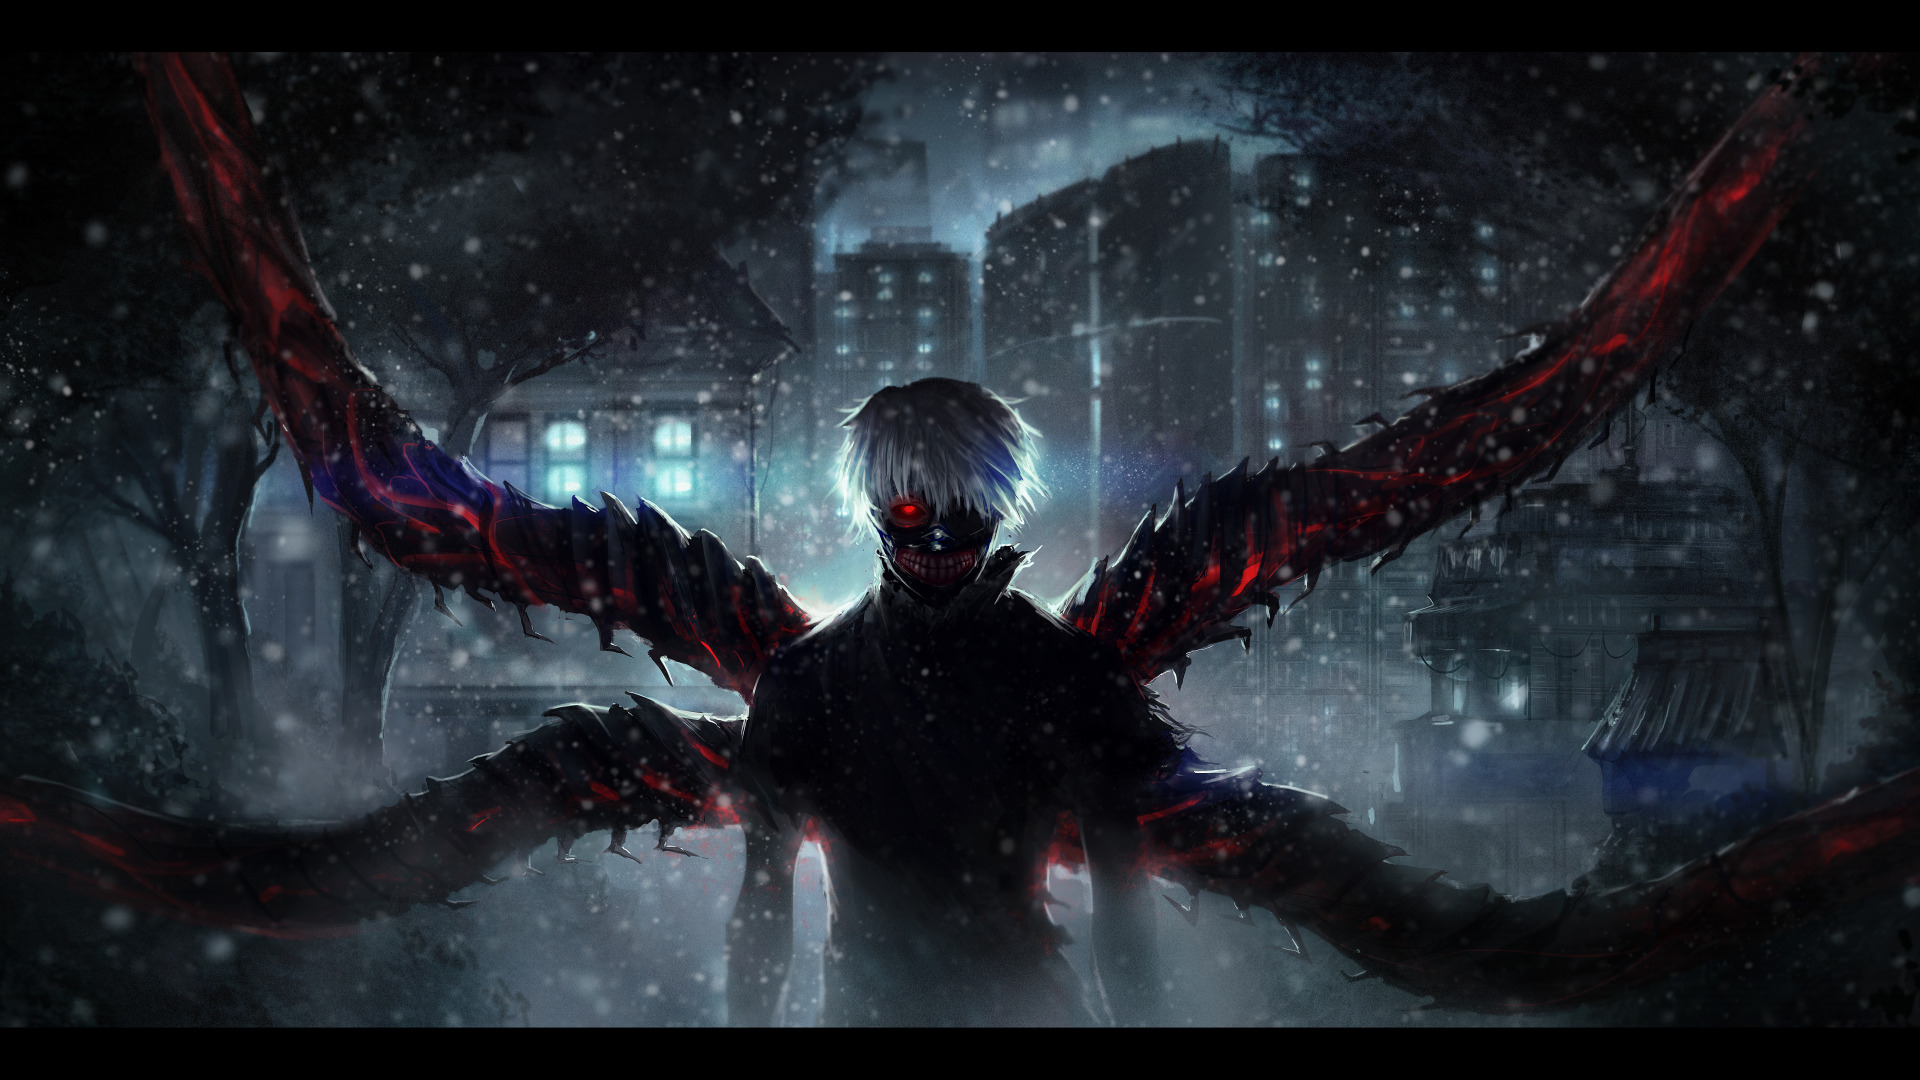 Download Wallpaper Night Darkness Anime Art Guy White